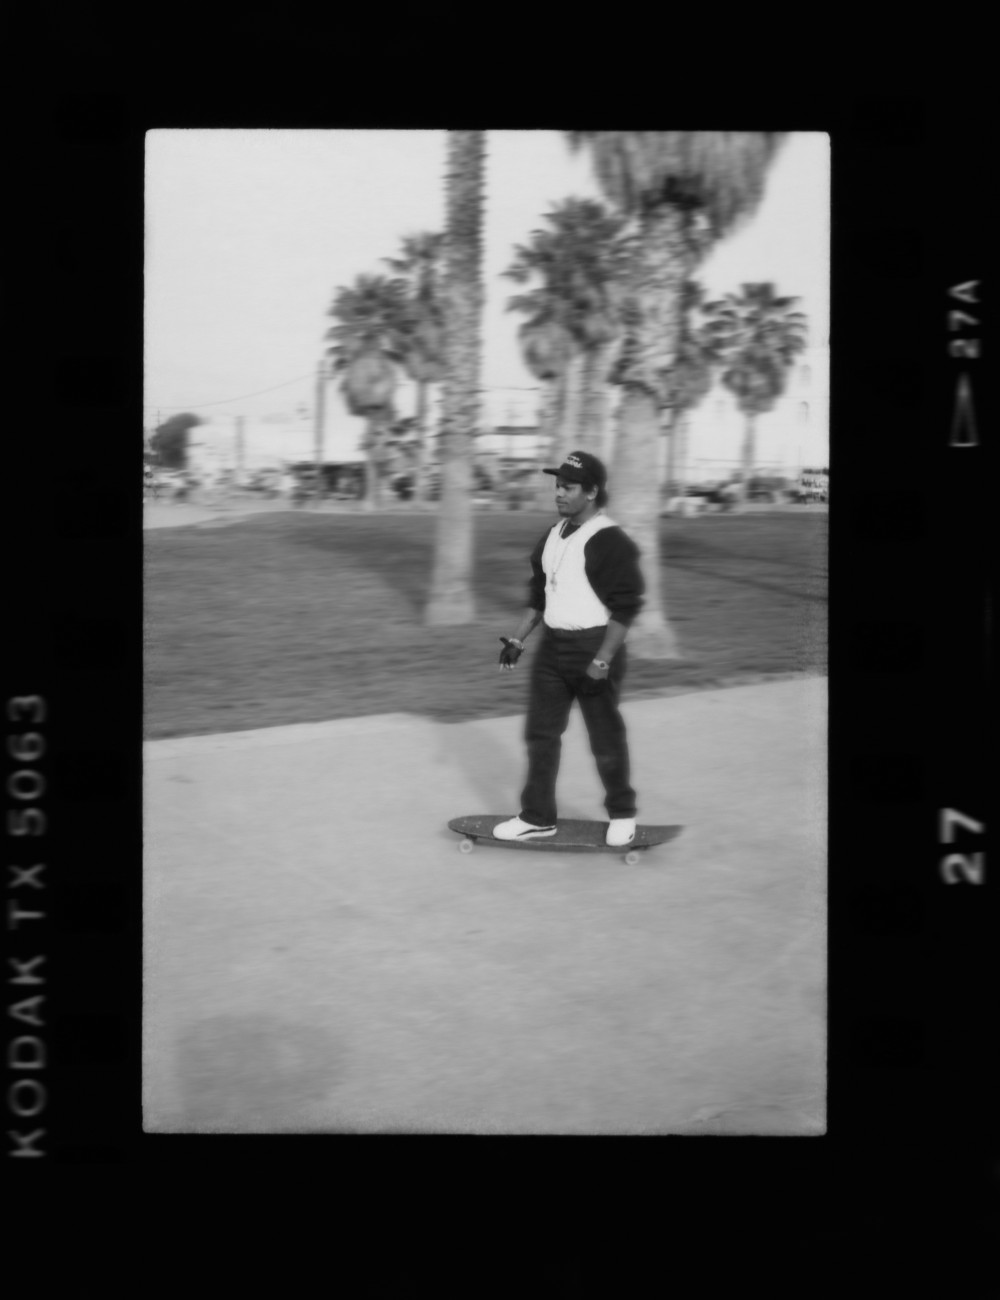 15. Eazy-E from N.W.A, skateboarding (1989). Photo by Ithaka Darin Pappas..jpg